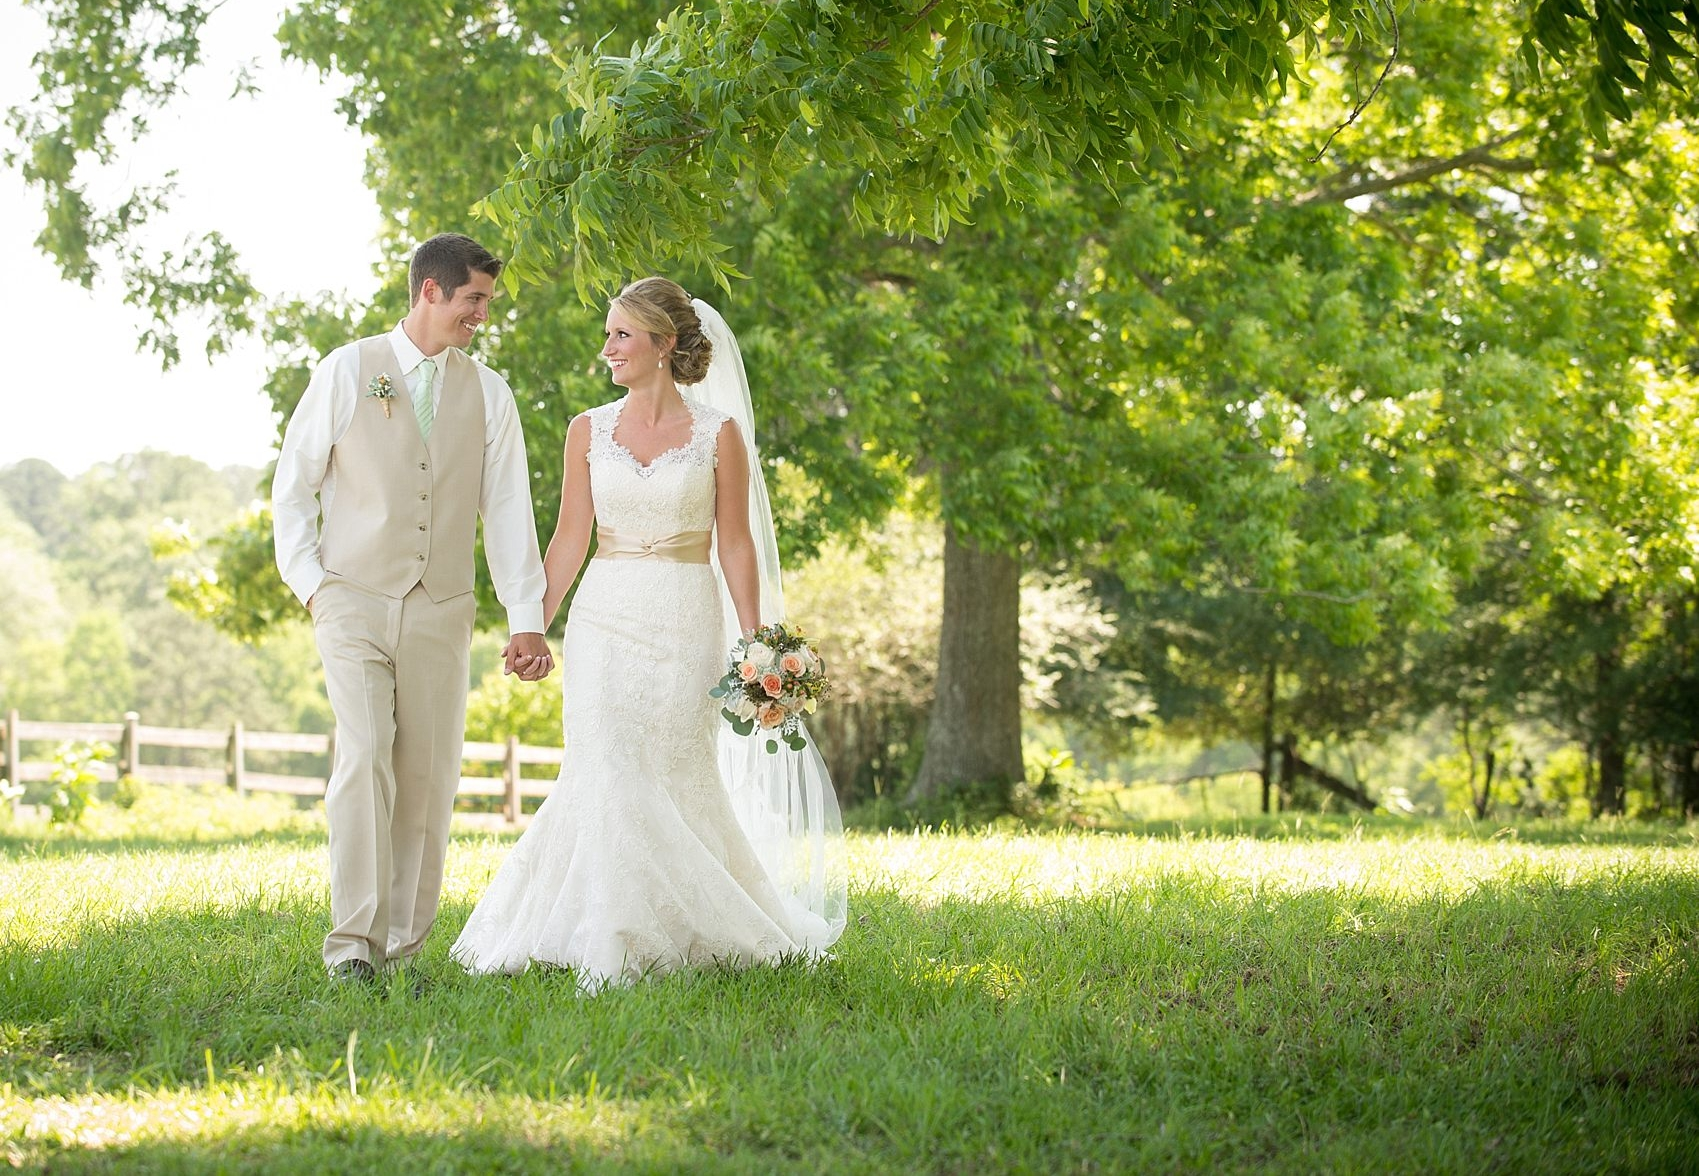 Would you like more information on wedding pricing and booking? -